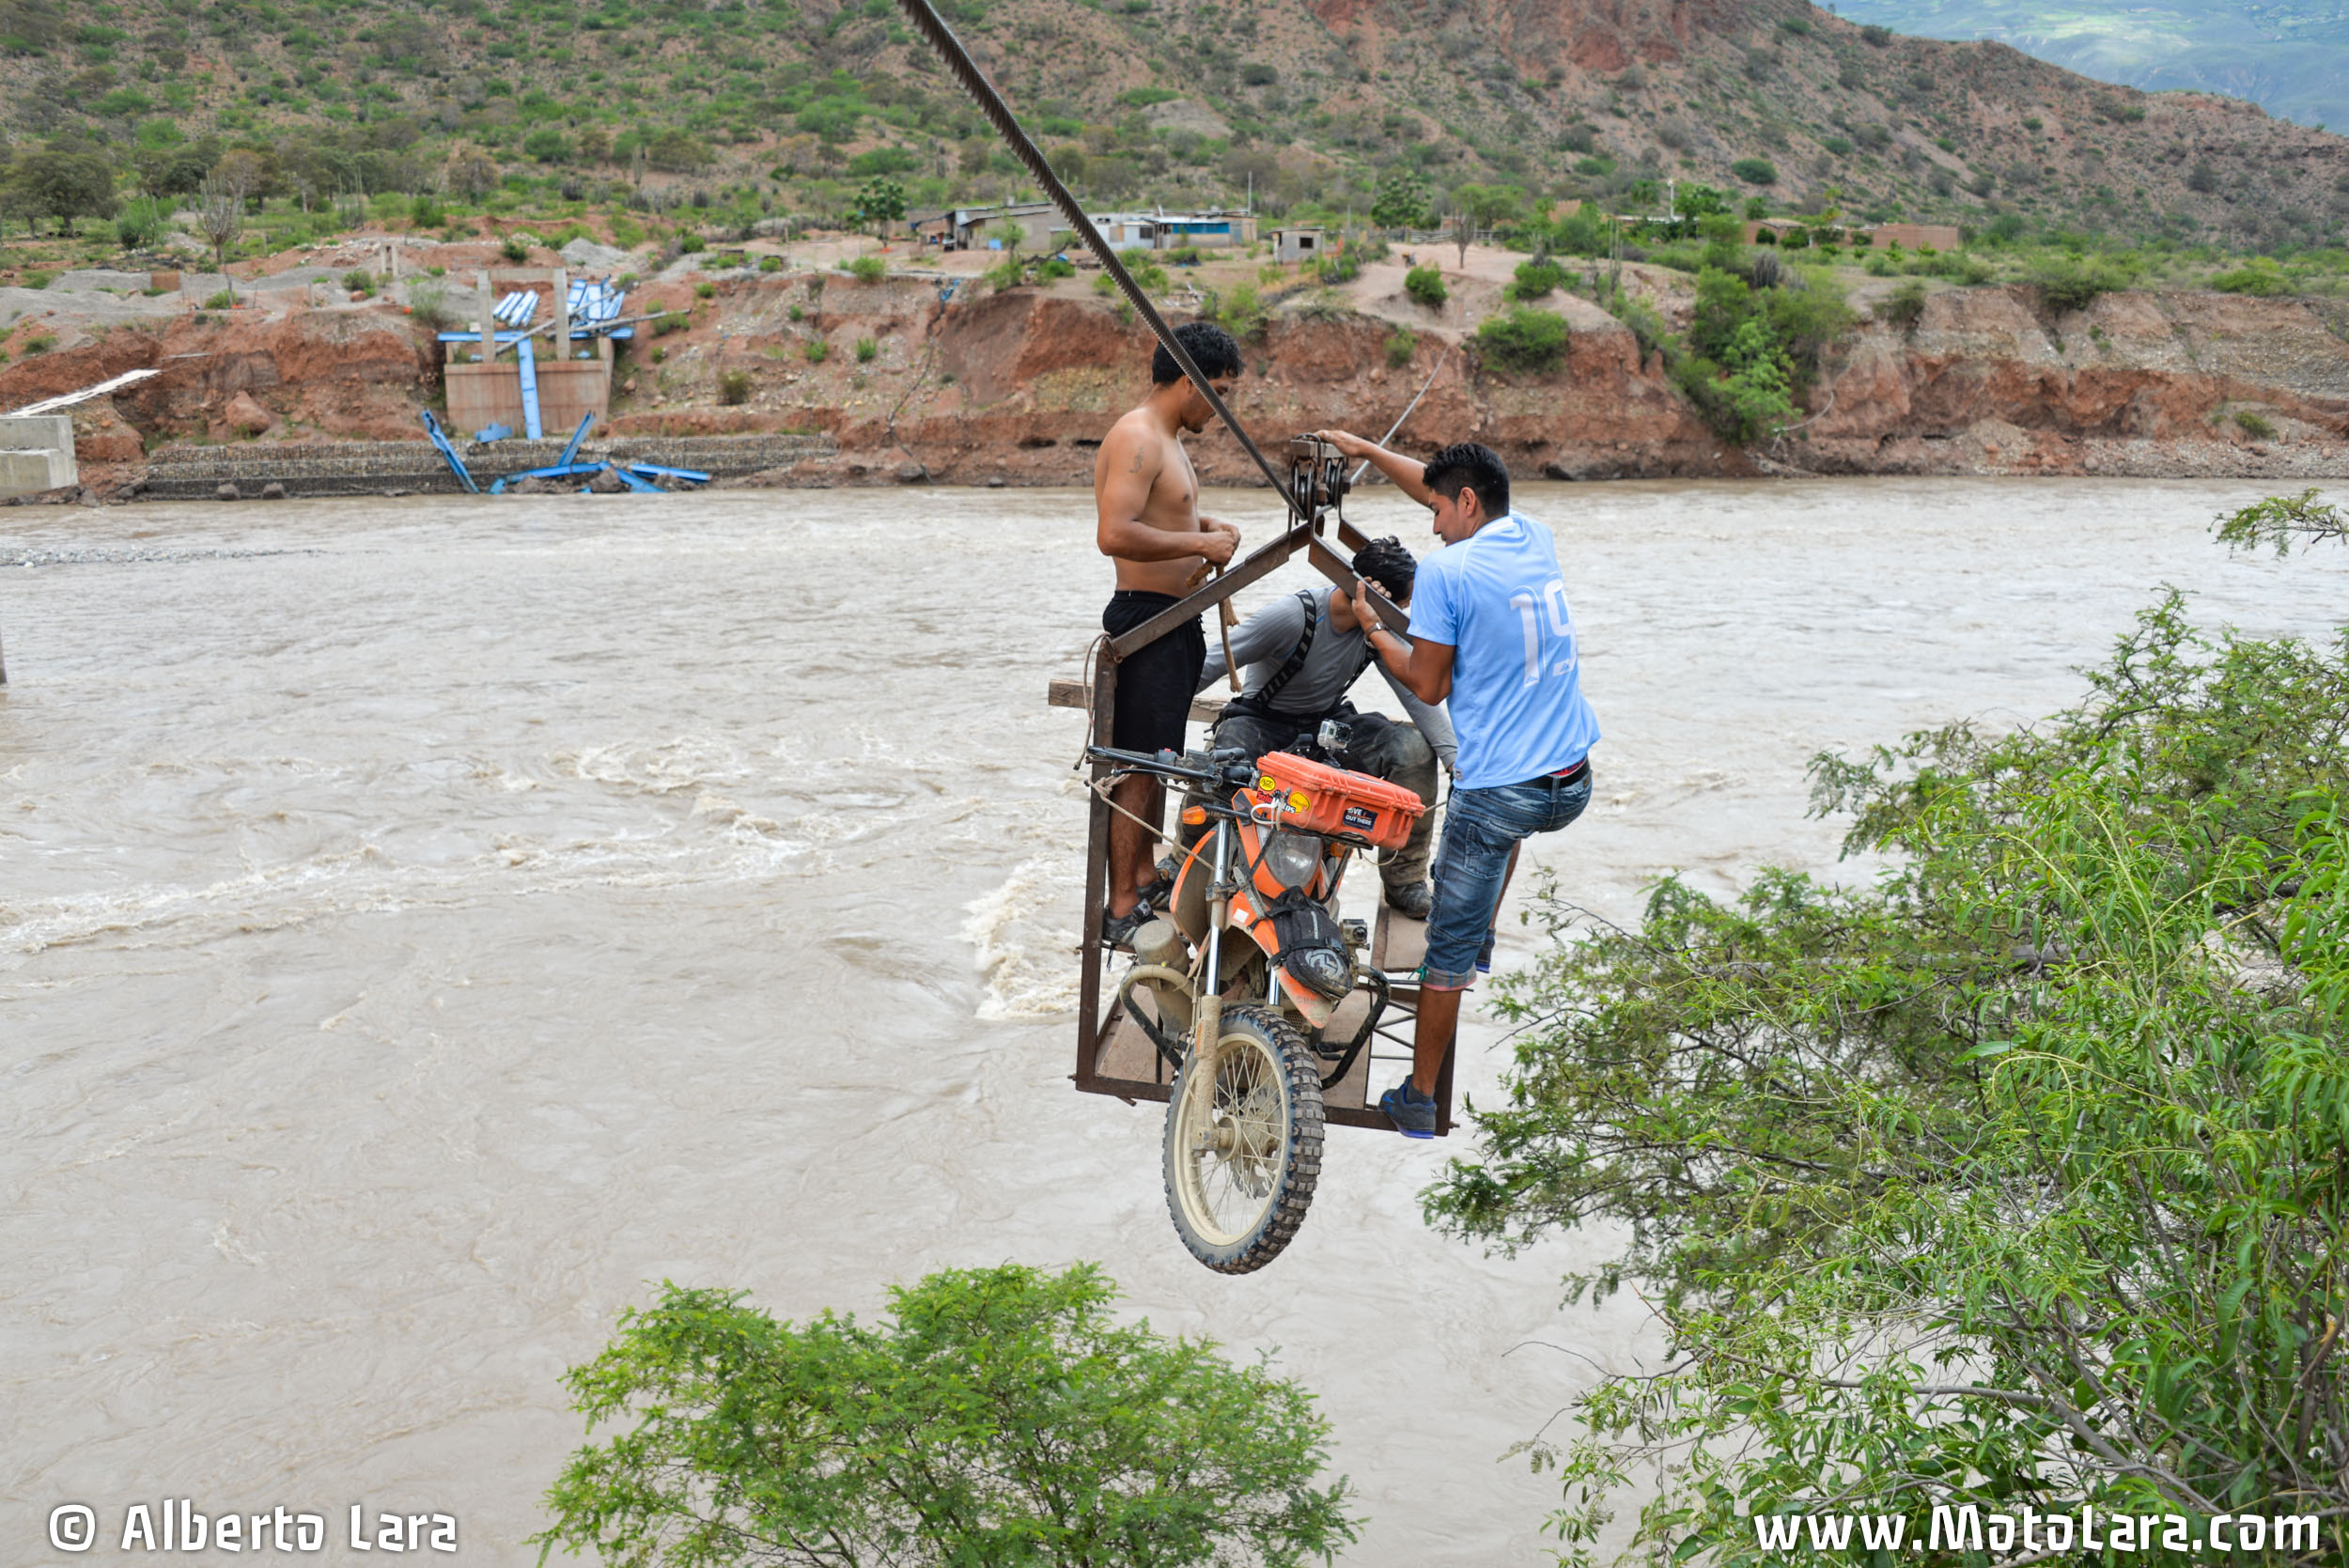 Corssing the Marañon river by cage & cable near Urpay, La Libertad.jpg